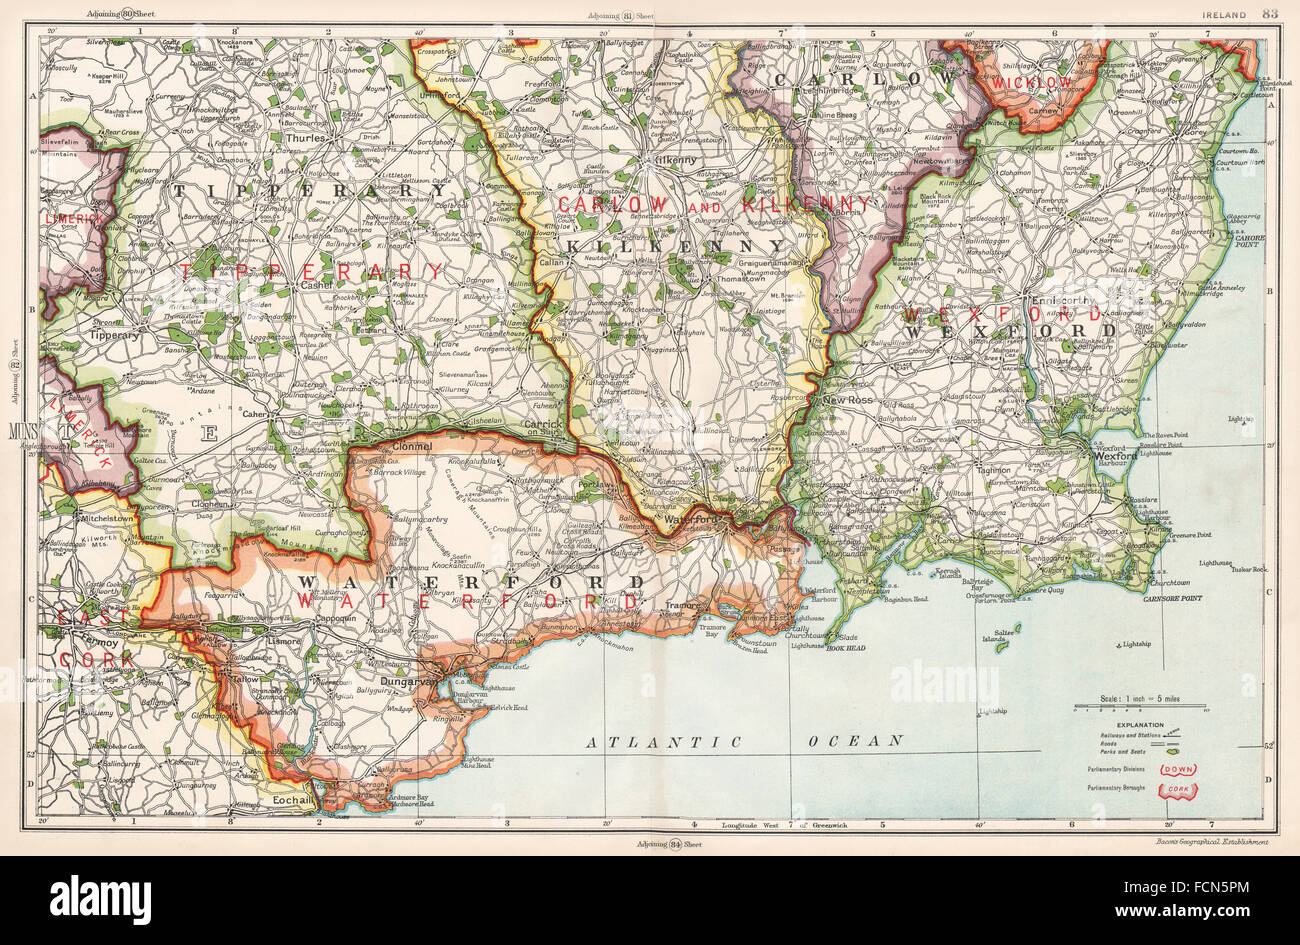 Map Of Ireland Showing Kilkenny.Se Ireland Waterford Wexford Kilkenny Tipperary Constituencies